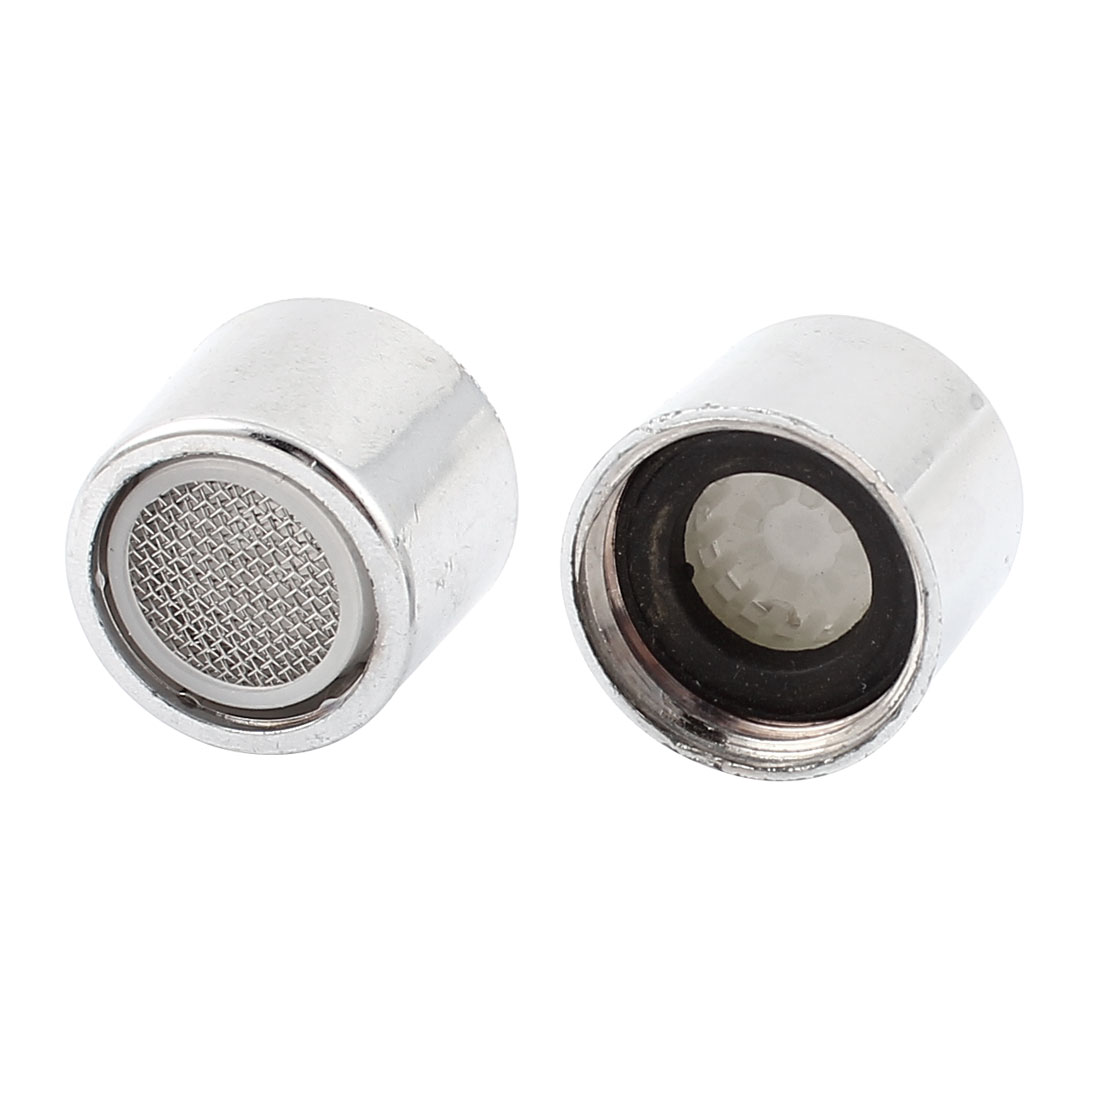 Kitchen Silver Tone 20mm Female Thread Water Tap Filter Nozzle 2 Pcs